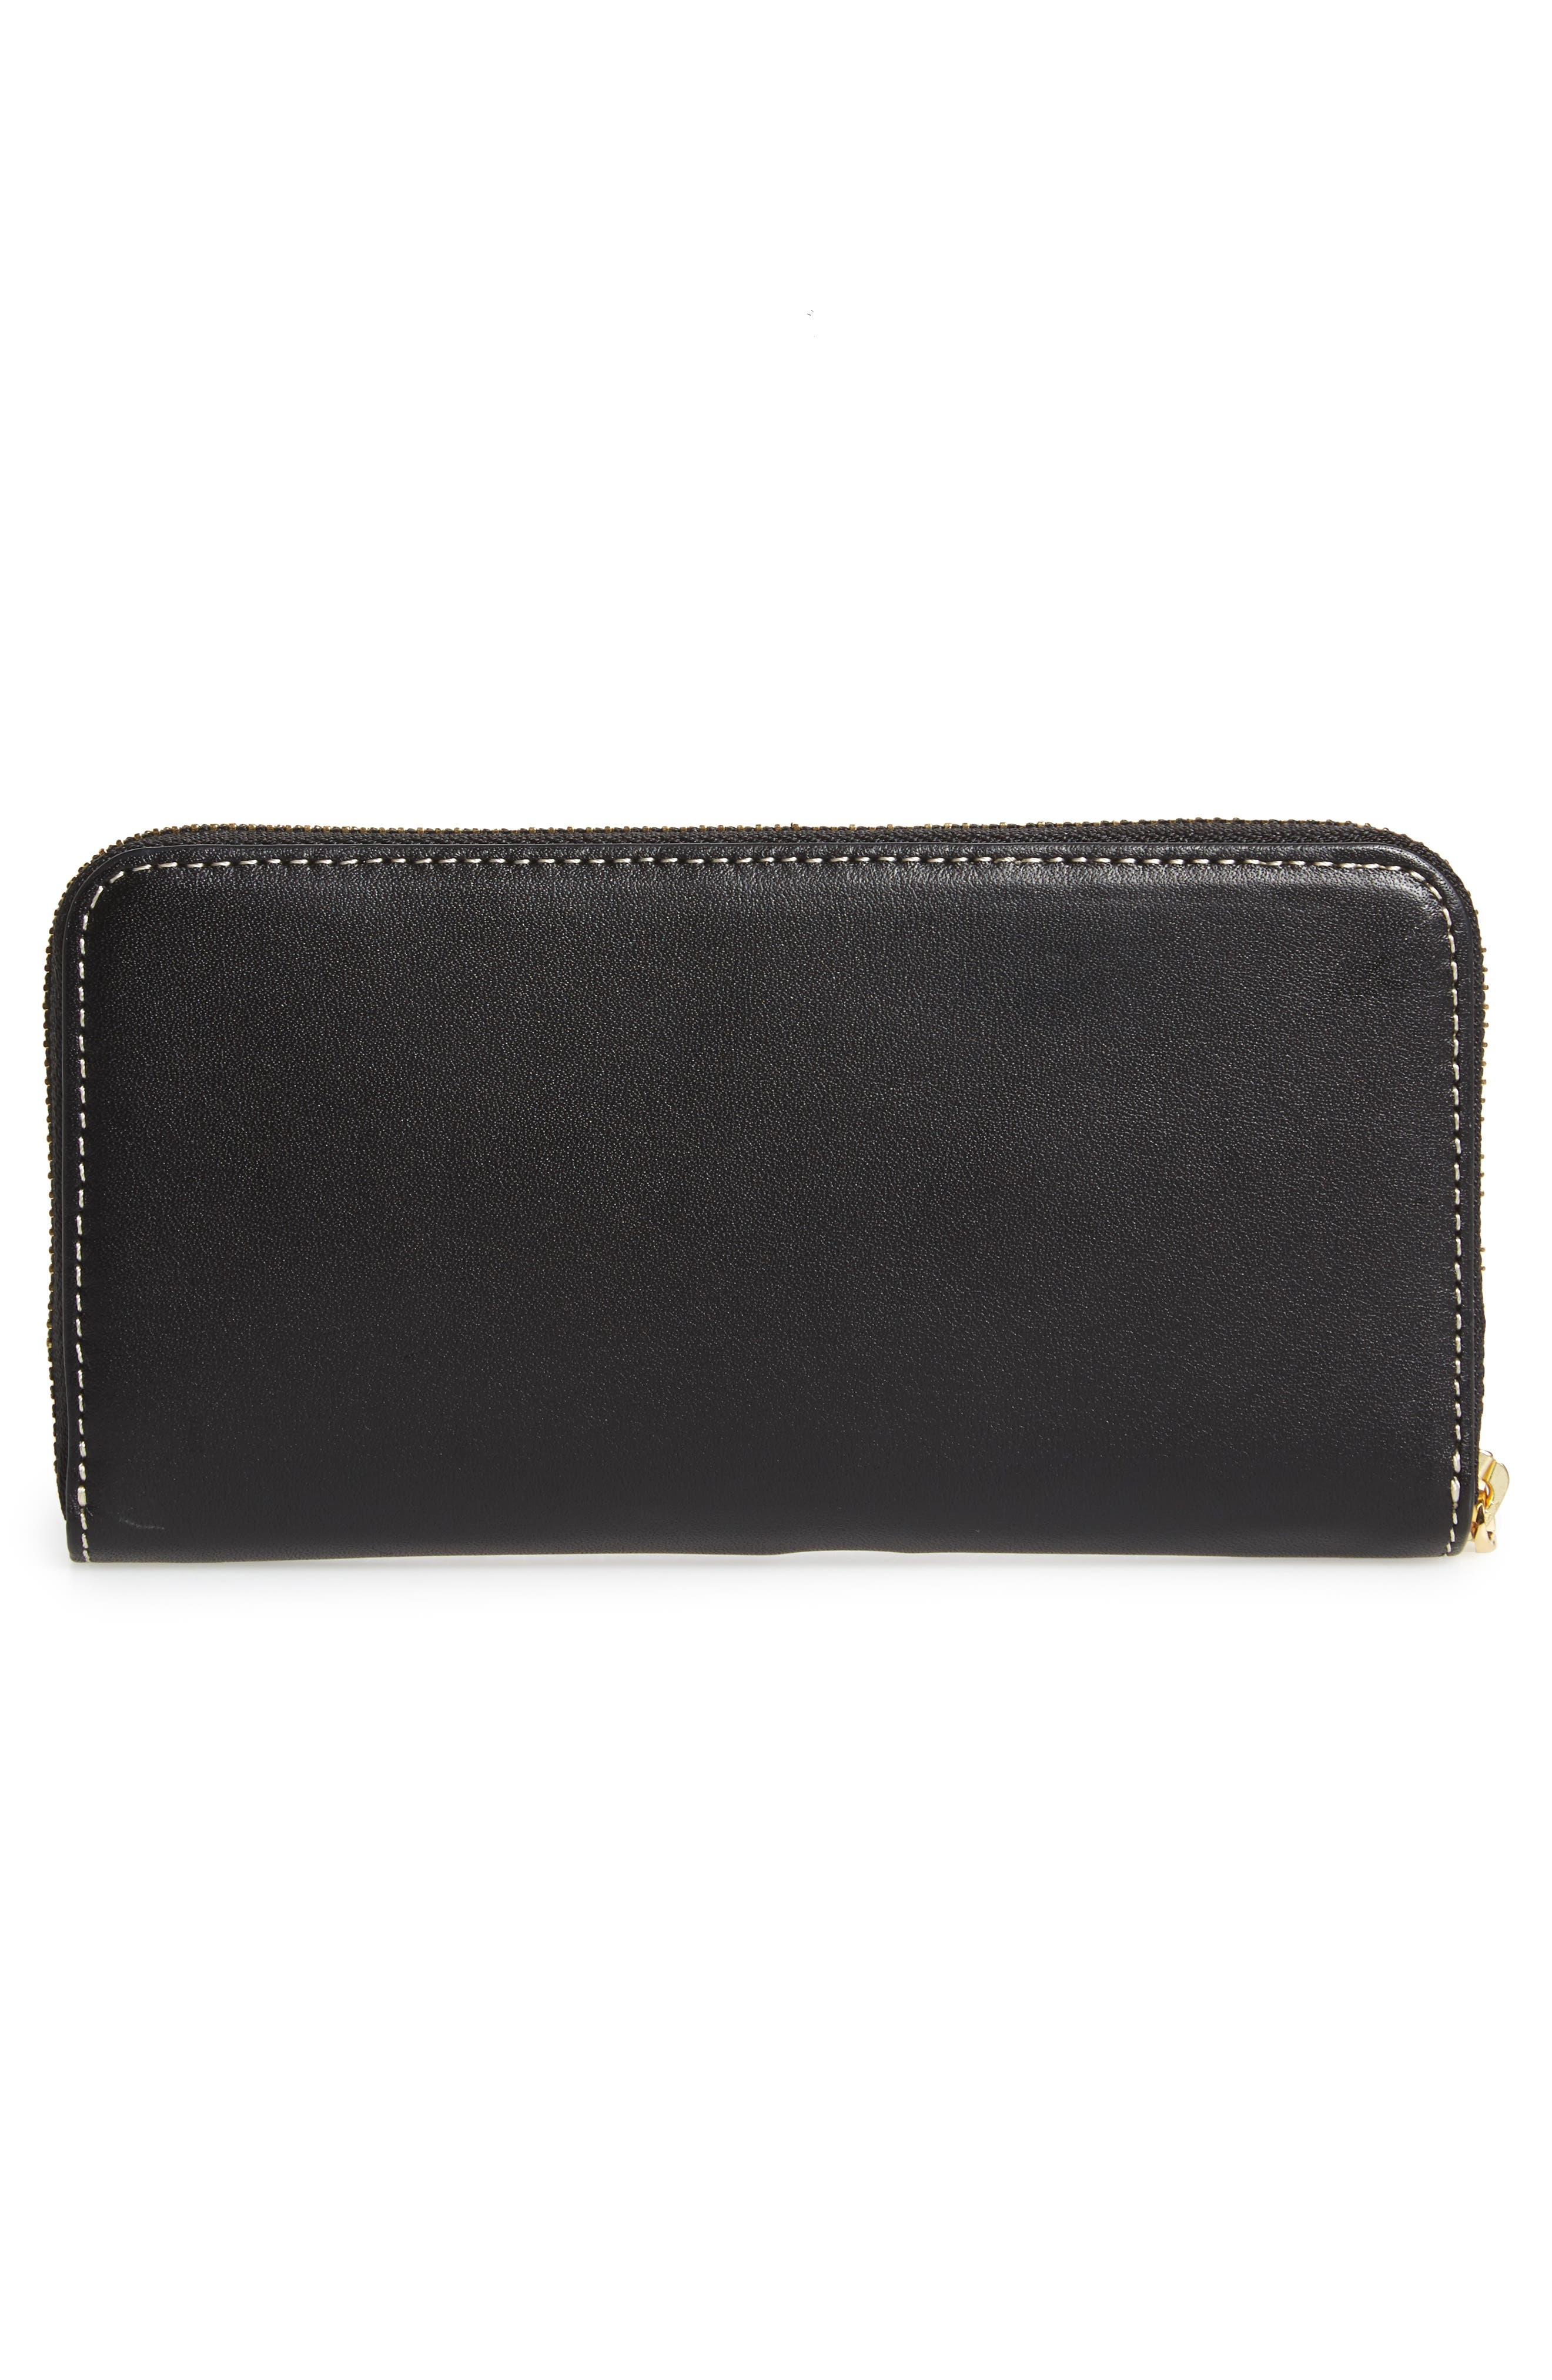 Kennedy Calfskin Leather Zip Around Wallet,                             Alternate thumbnail 3, color,                             001